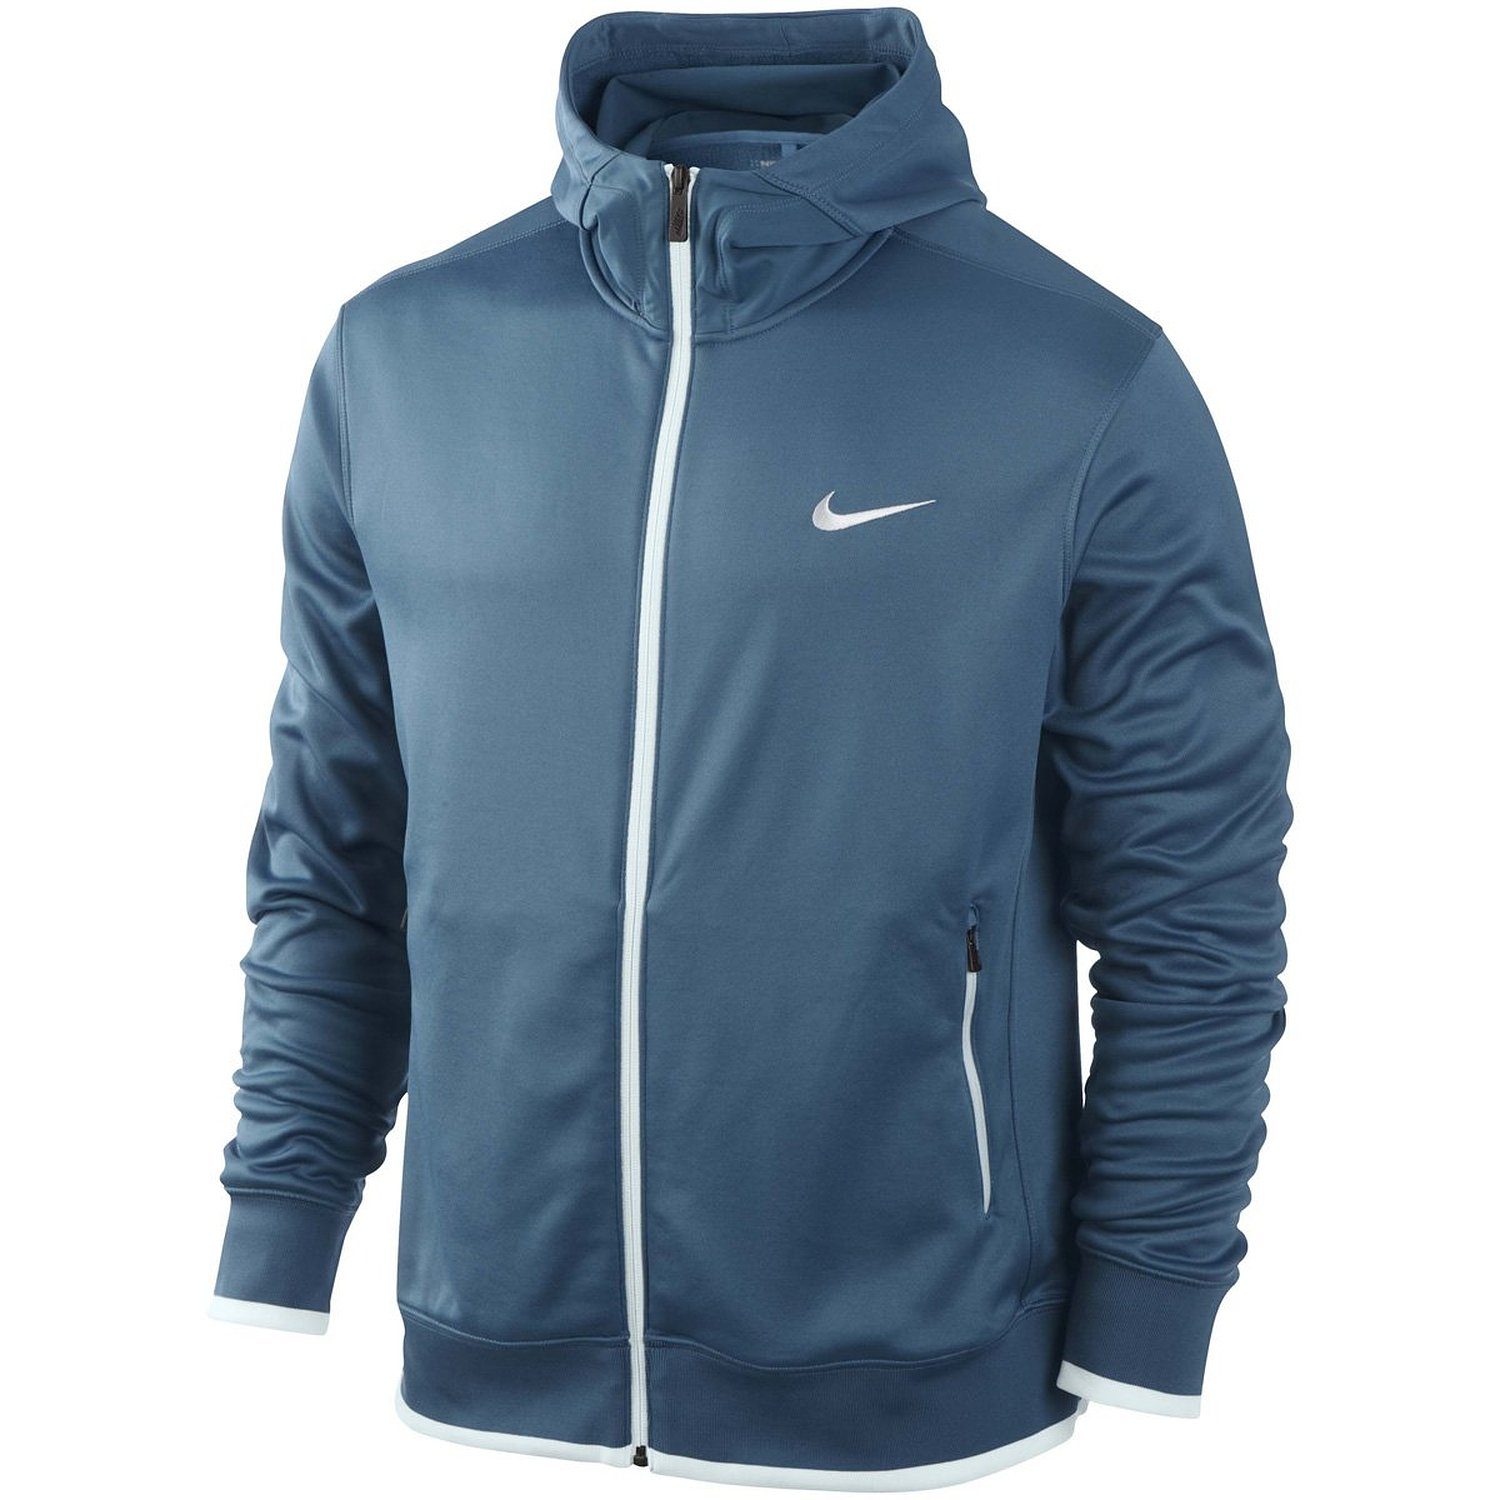 Nike Mens Dri-FIT Sport Hoody (Large, Shaded Blue/Windchill)